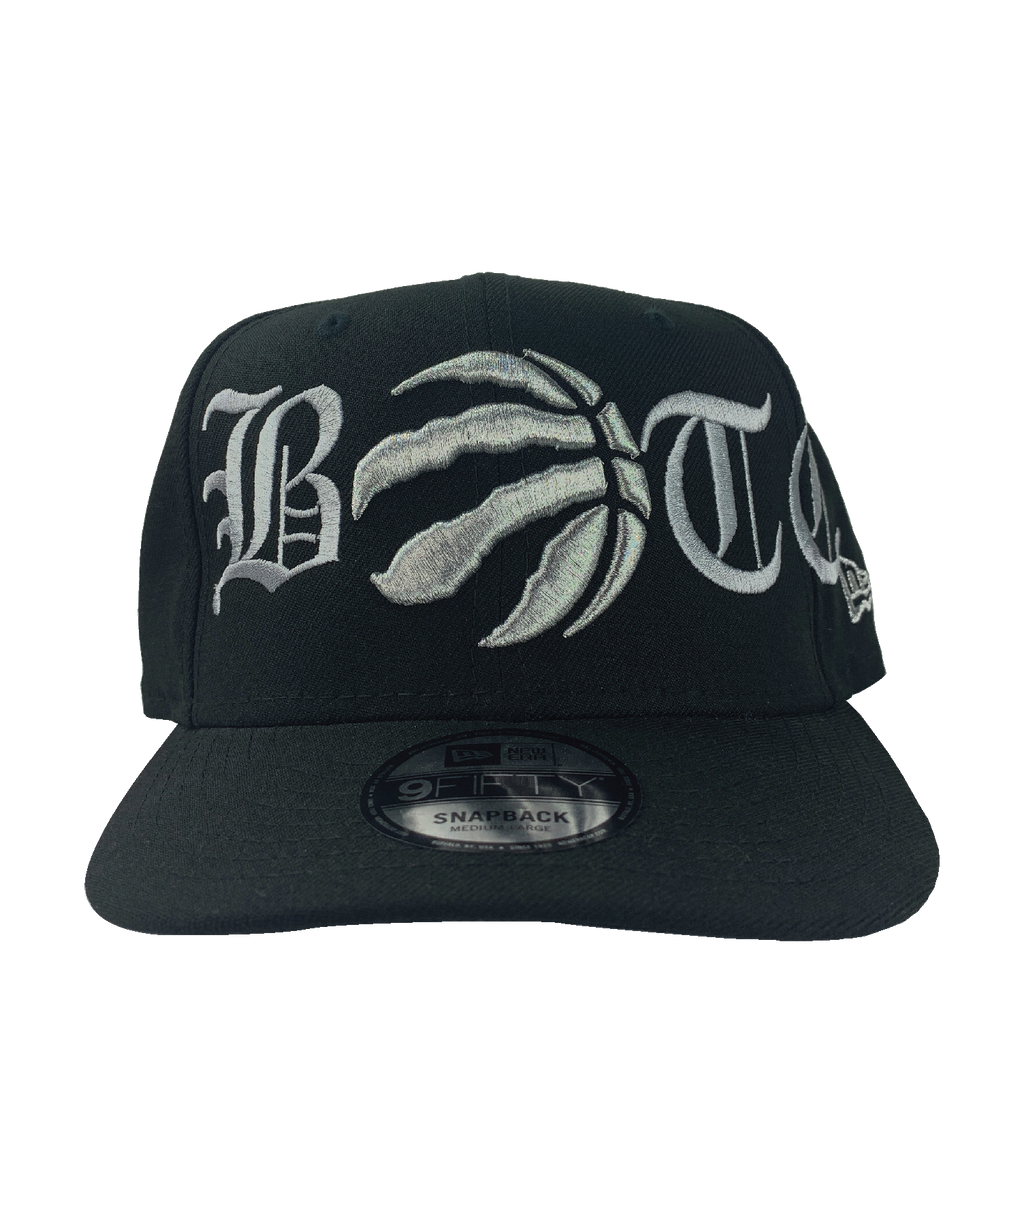 Toronto Raptors BOTC Old English Snapback